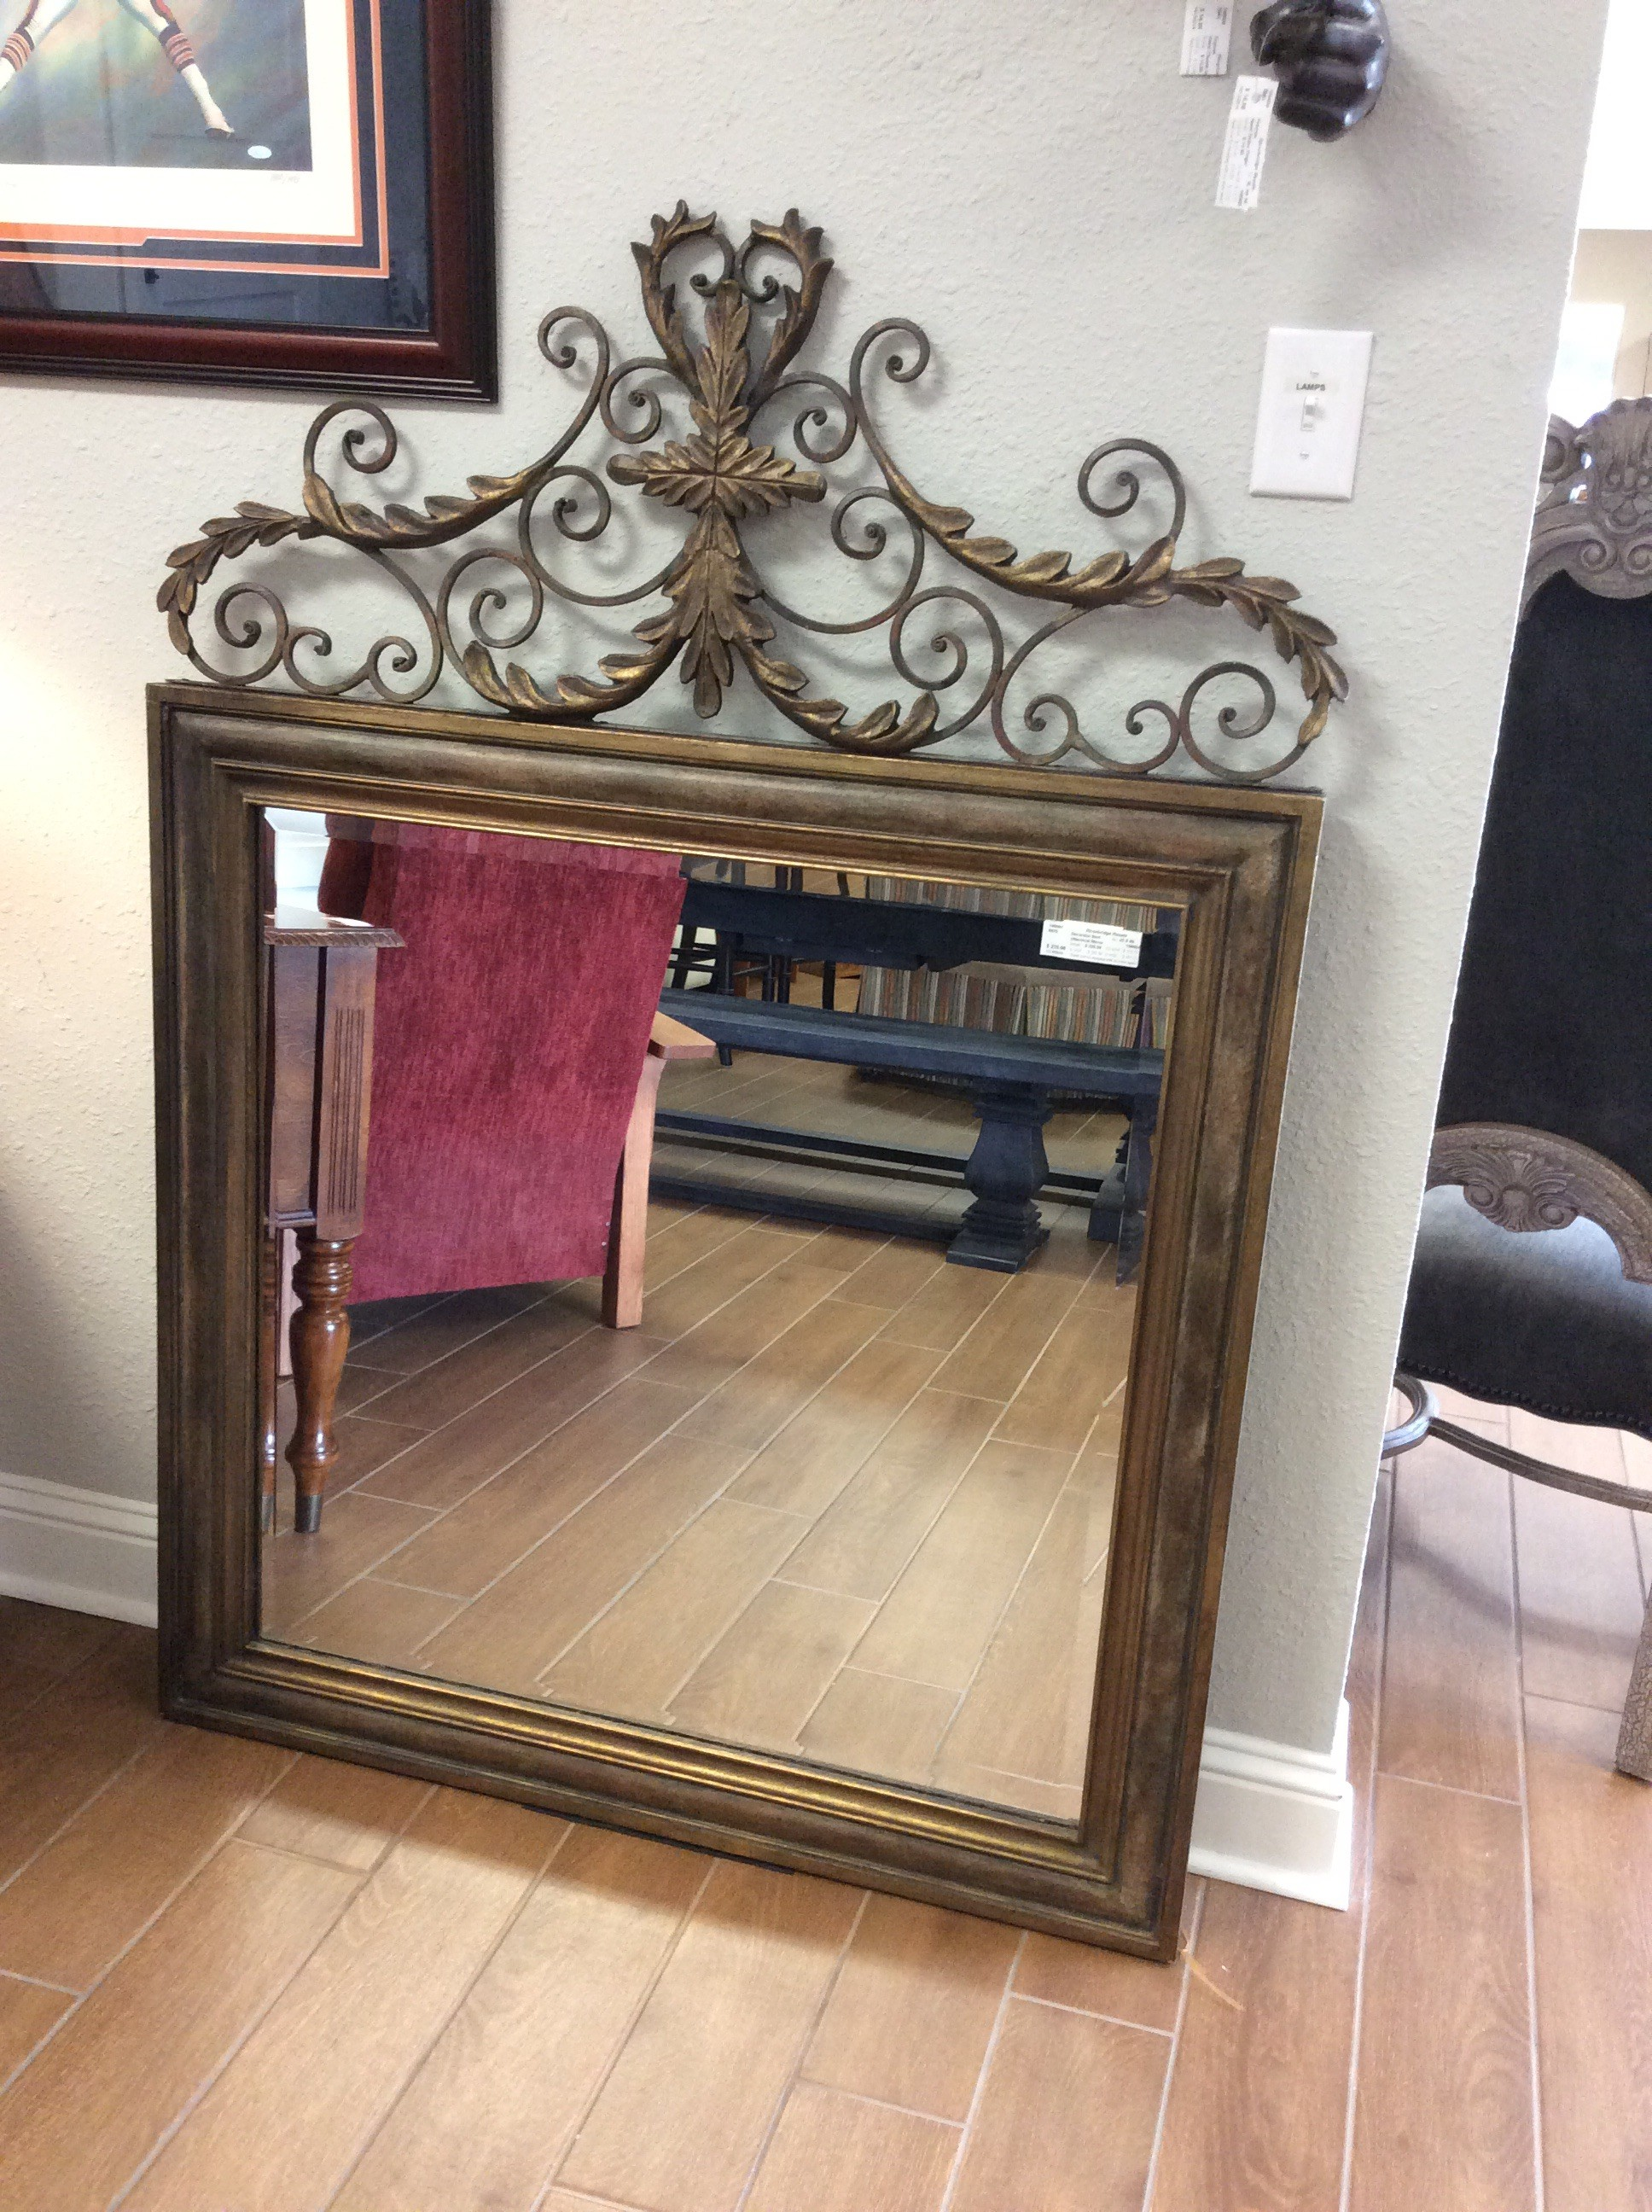 "This ornate mirror by Uttermost is lovely. Large at 42"" x 60"",  the top is adorned by scrollwork and vines giving it a vintagy, antiqued look."